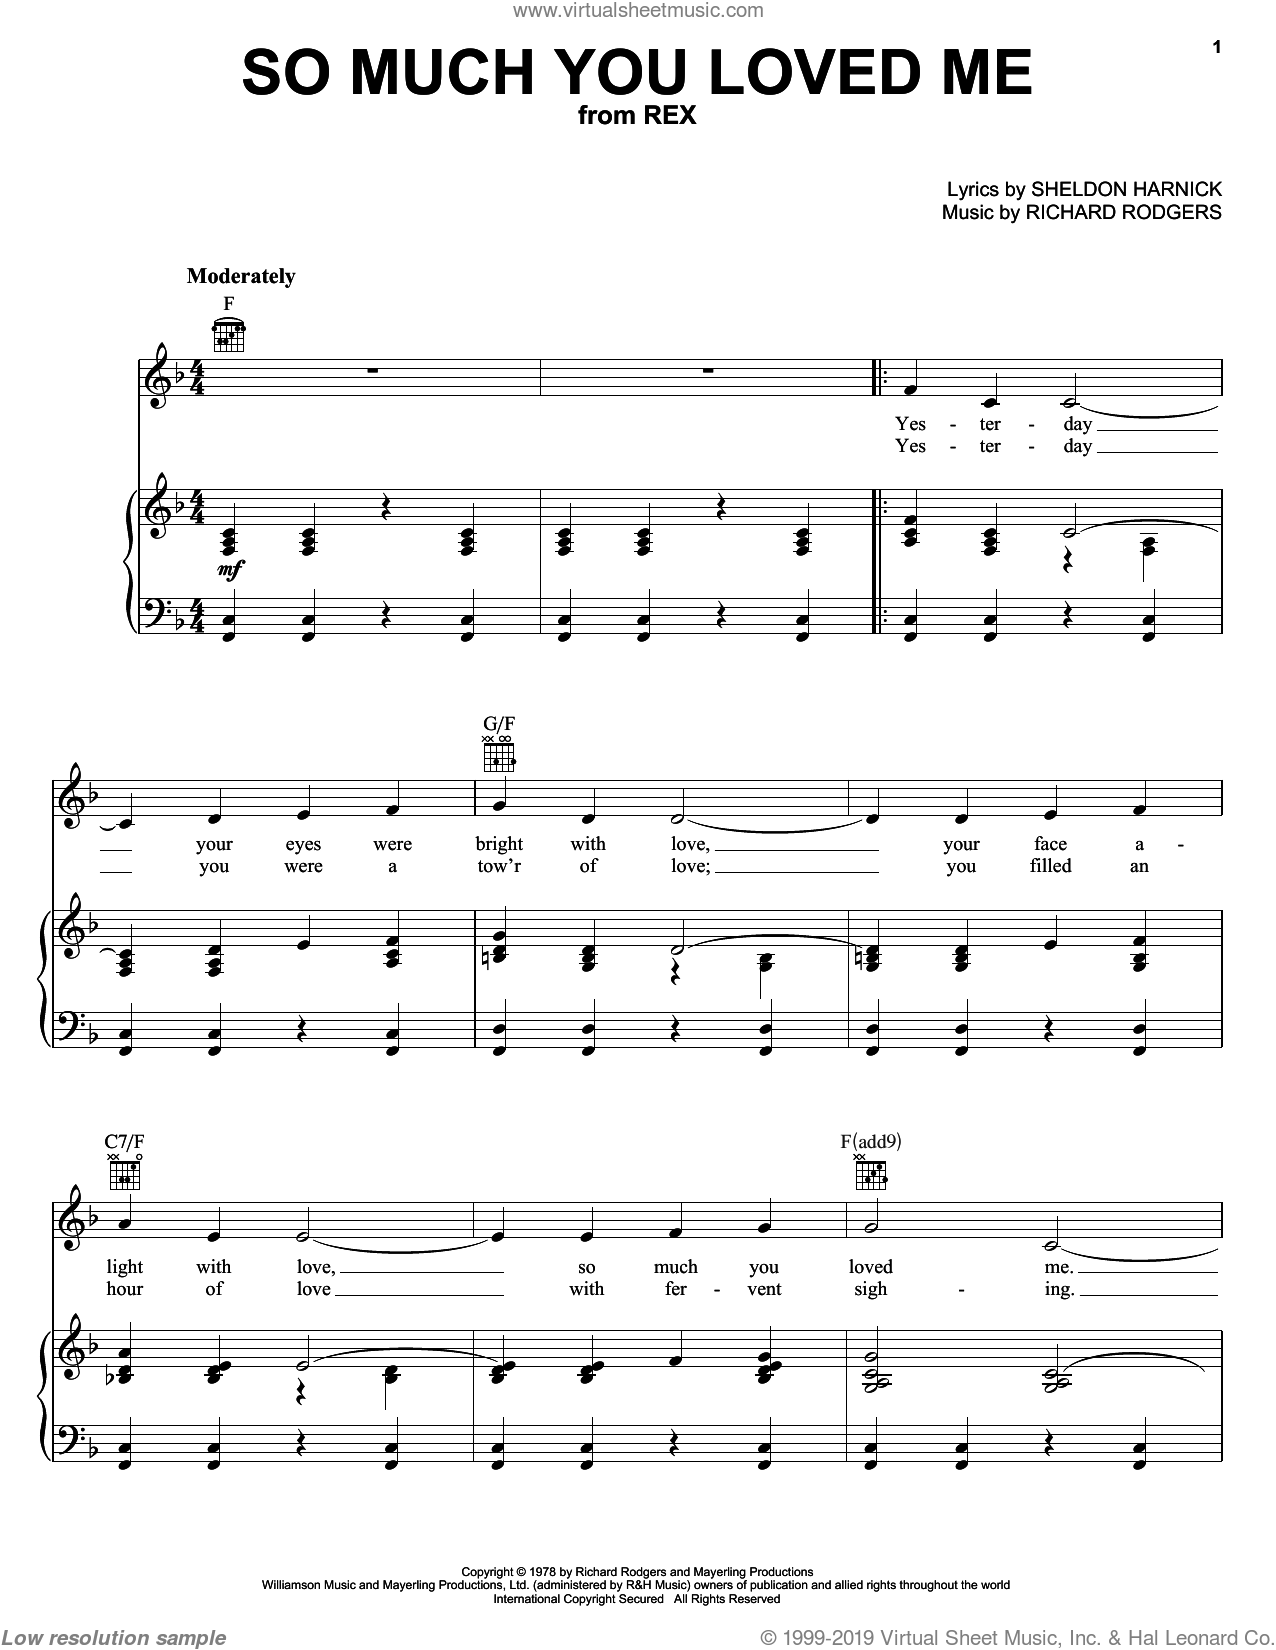 So Much You Loved Me sheet music for voice, piano or guitar by Sheldon Harnick and Richard Rodgers